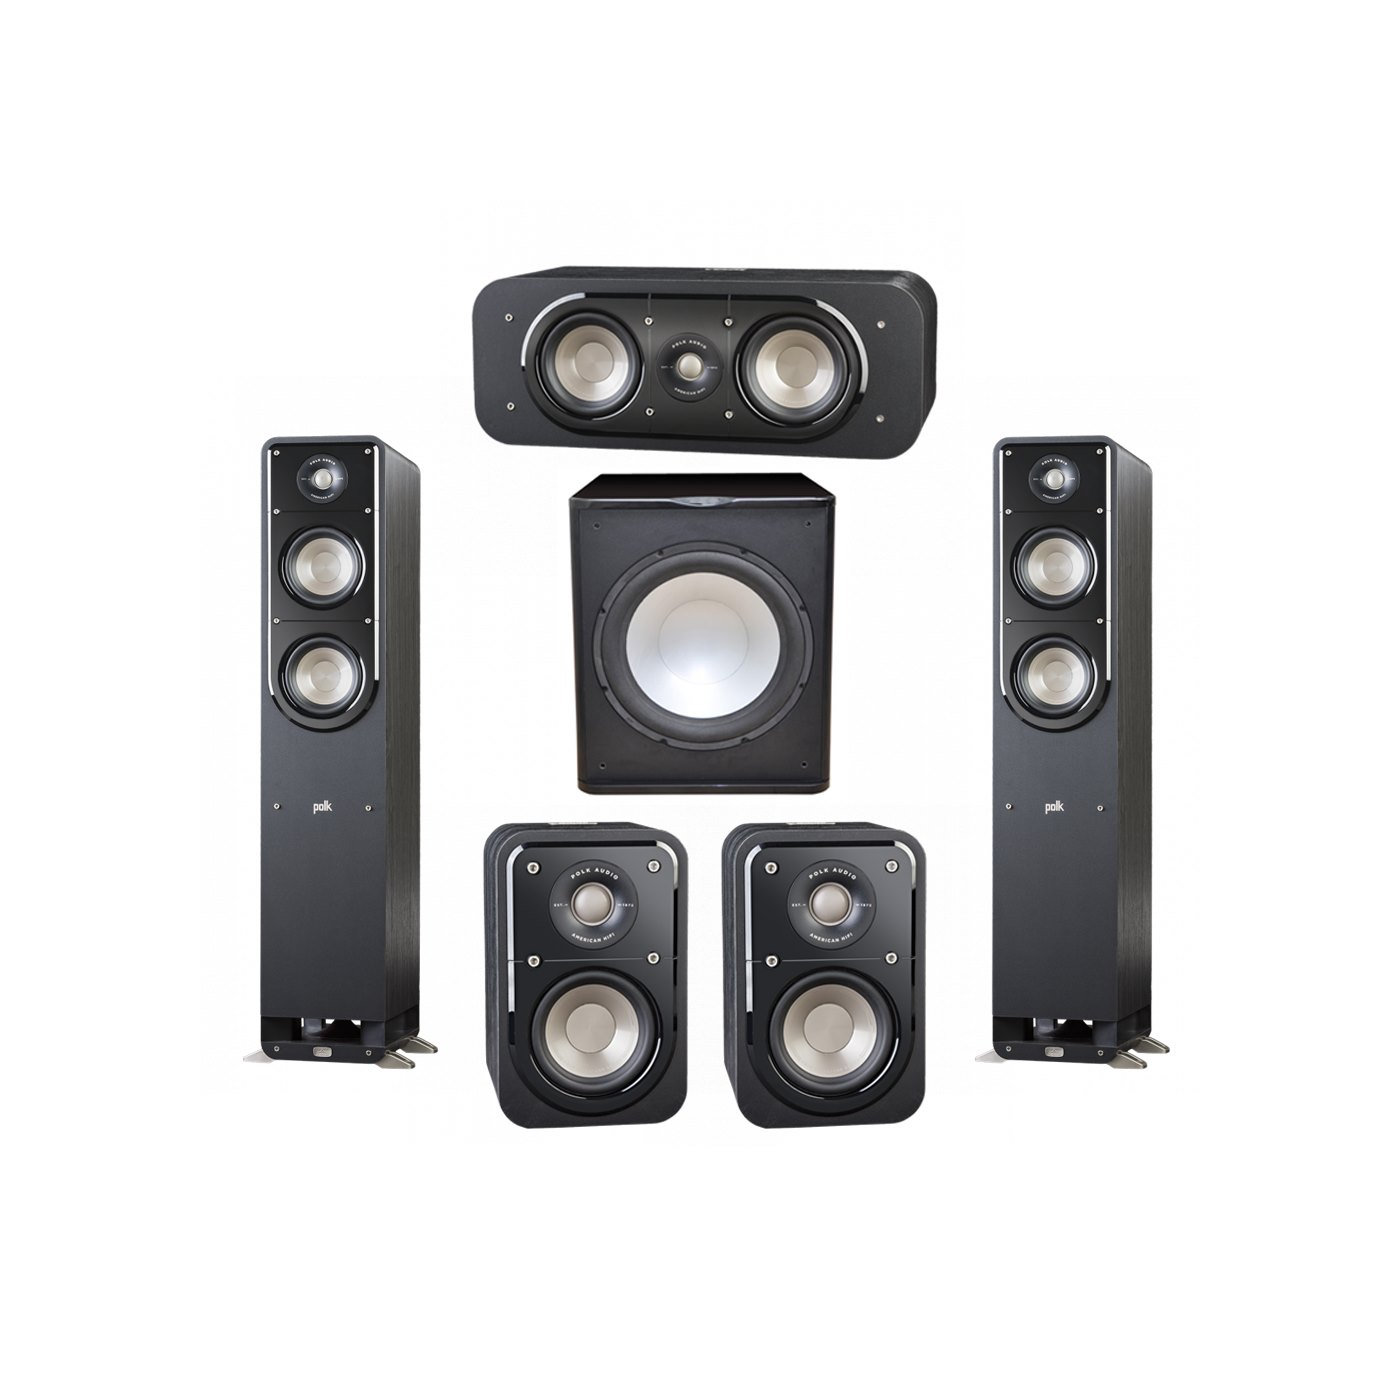 Polk Audio Signature 5.1 System with 2 S50 Tower Speaker, 1 Polk S30 Center Speaker, 2 Polk S10 Surround Speaker, 1 Premier Acoustic PA-150 Powered Subwoofer